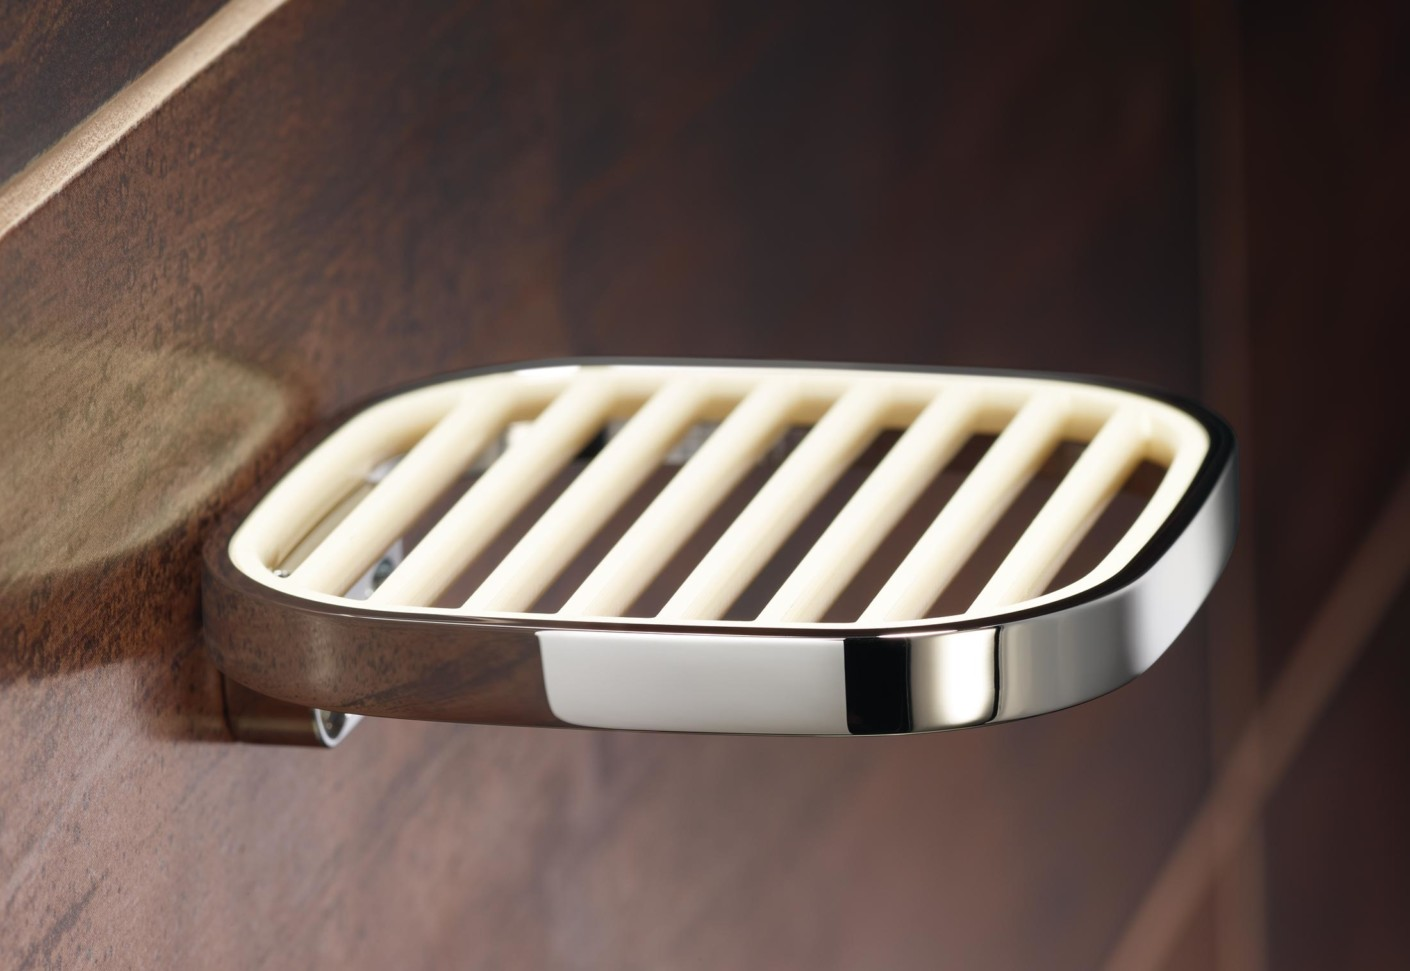 Gentle Soap tray by Dornbracht  STYLEPARK